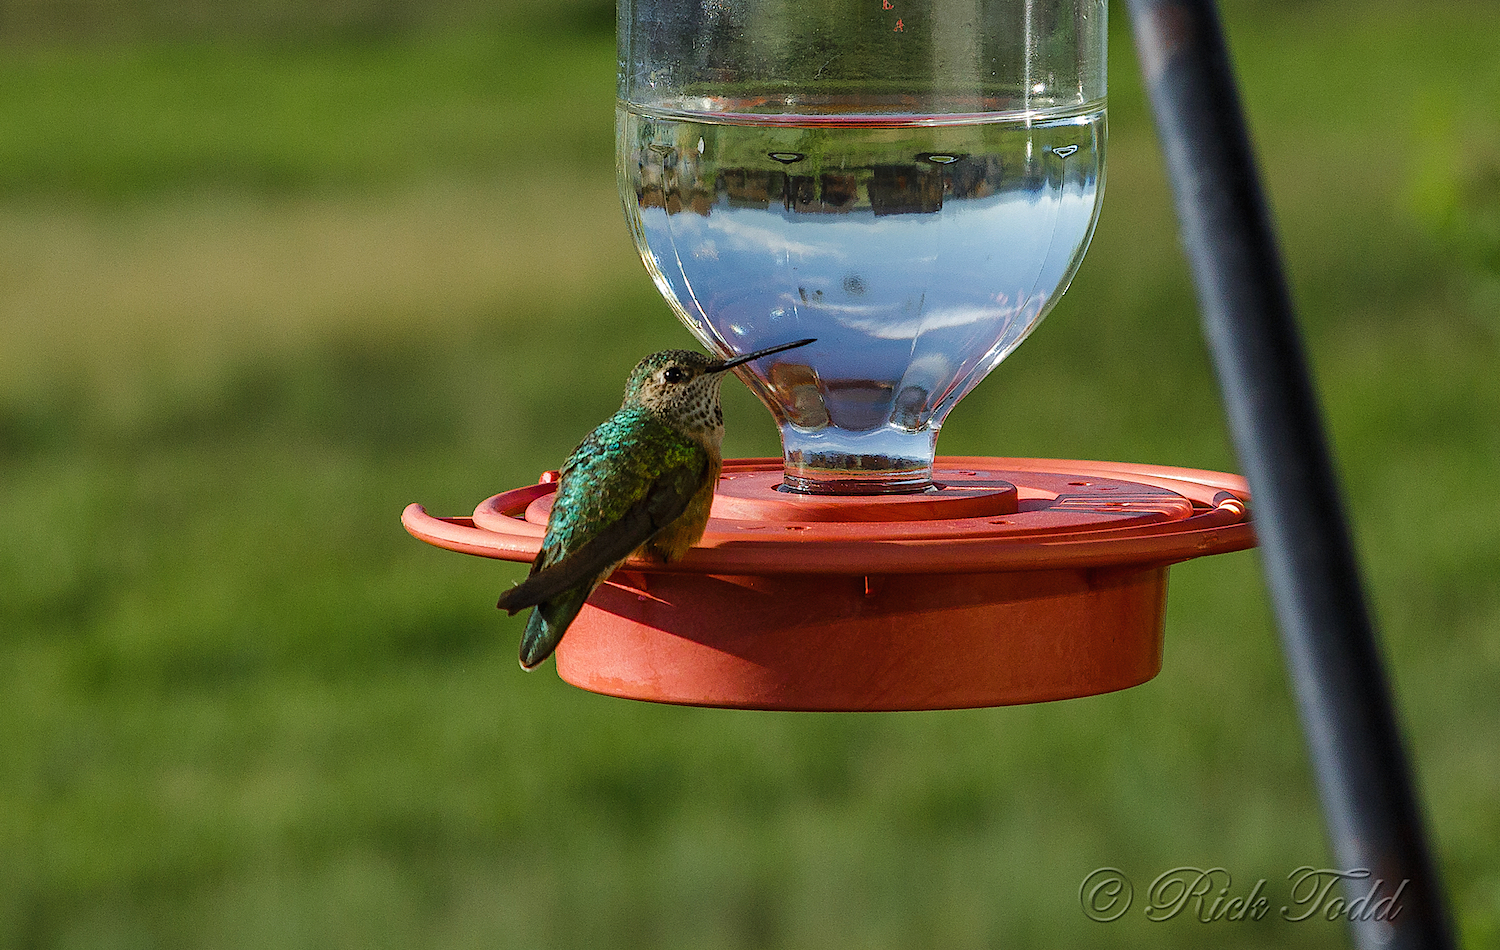 Rick wrote that there was ahummingbirds frenzy at this feeder. Lucky one sat still just long enough for a good shot.